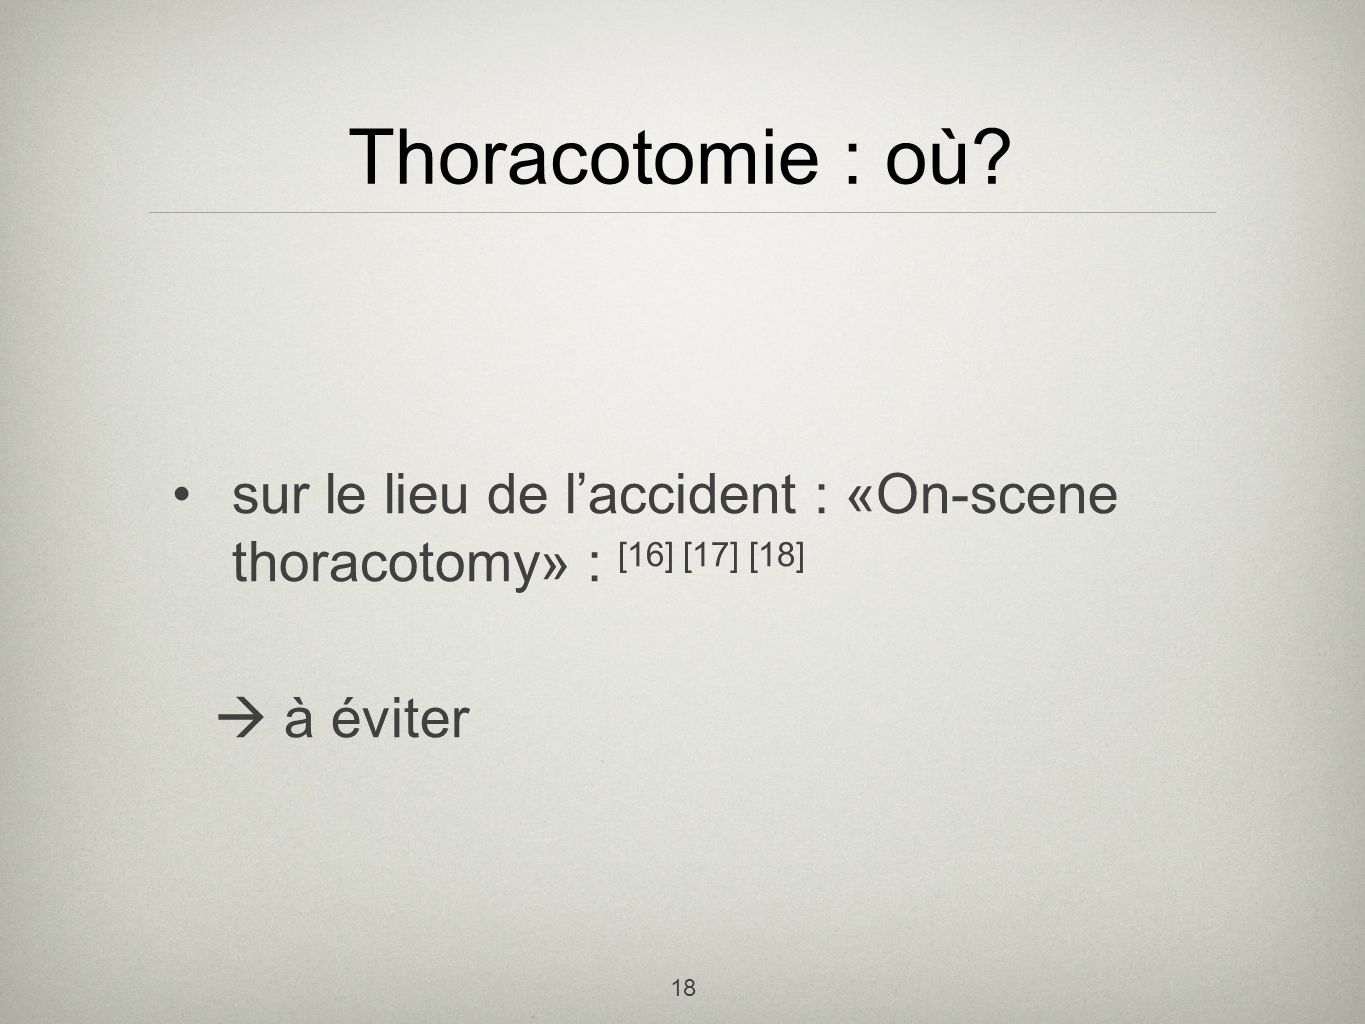 Thoracotomie : où sur le lieu de l'accident : «On-scene thoracotomy» : [16] [17] [18]  à éviter.